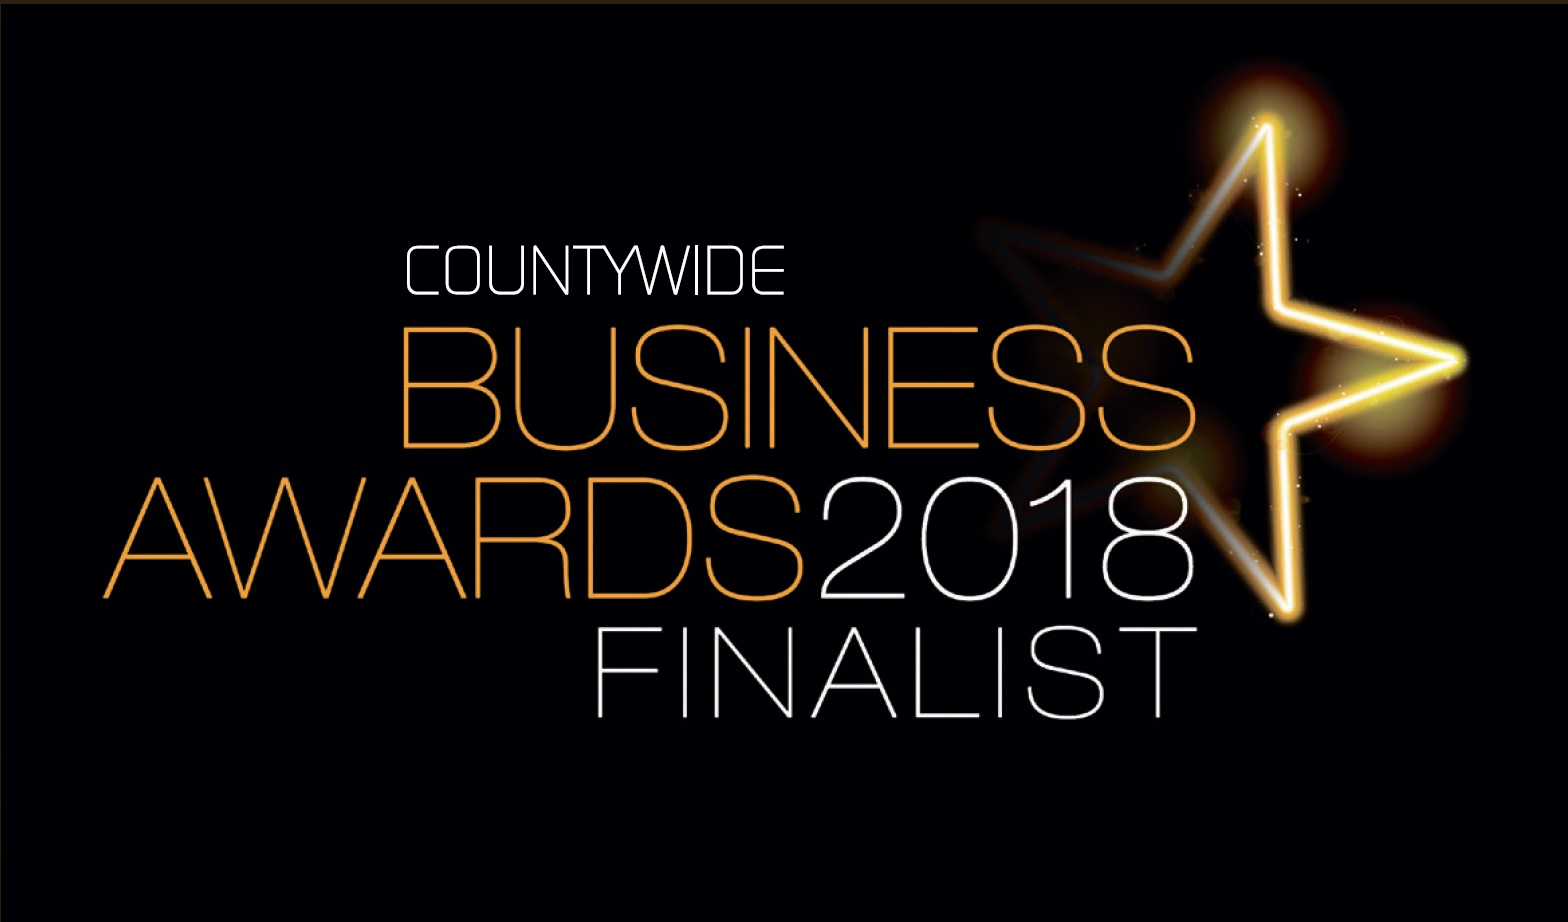 Countywide Business Awards – Finalist 2018